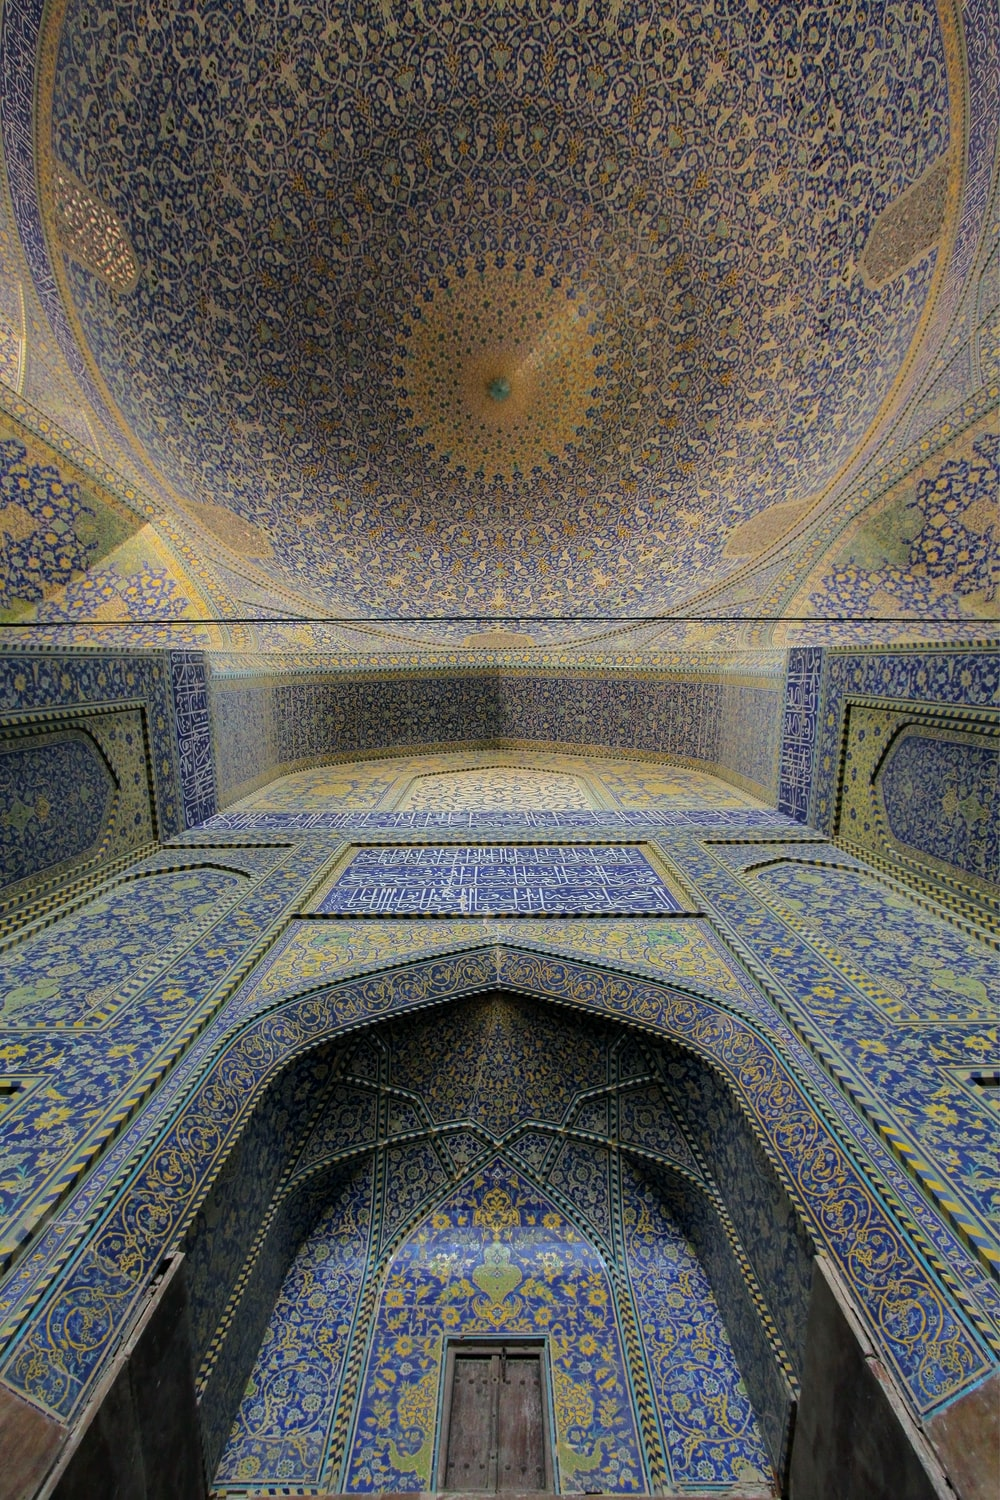 low angle view of Gothic ceiling of building